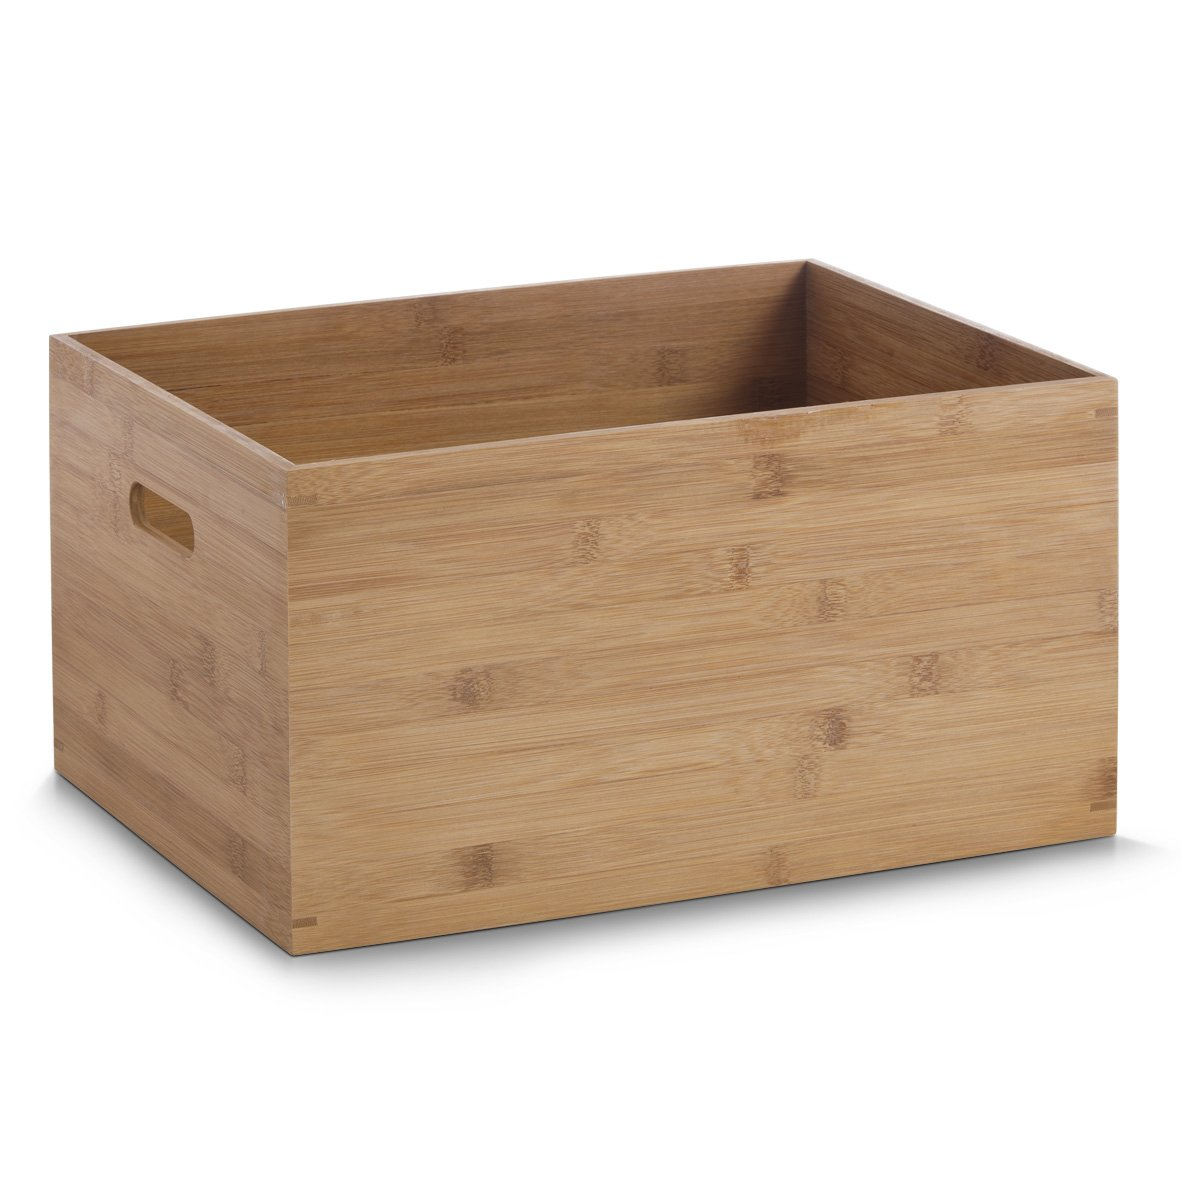 Superbe Zeller Storage Box, Bamboo, Multi Colour, 40 X 30 X 21 Cm: Amazon.co.uk:  Kitchen U0026 Home